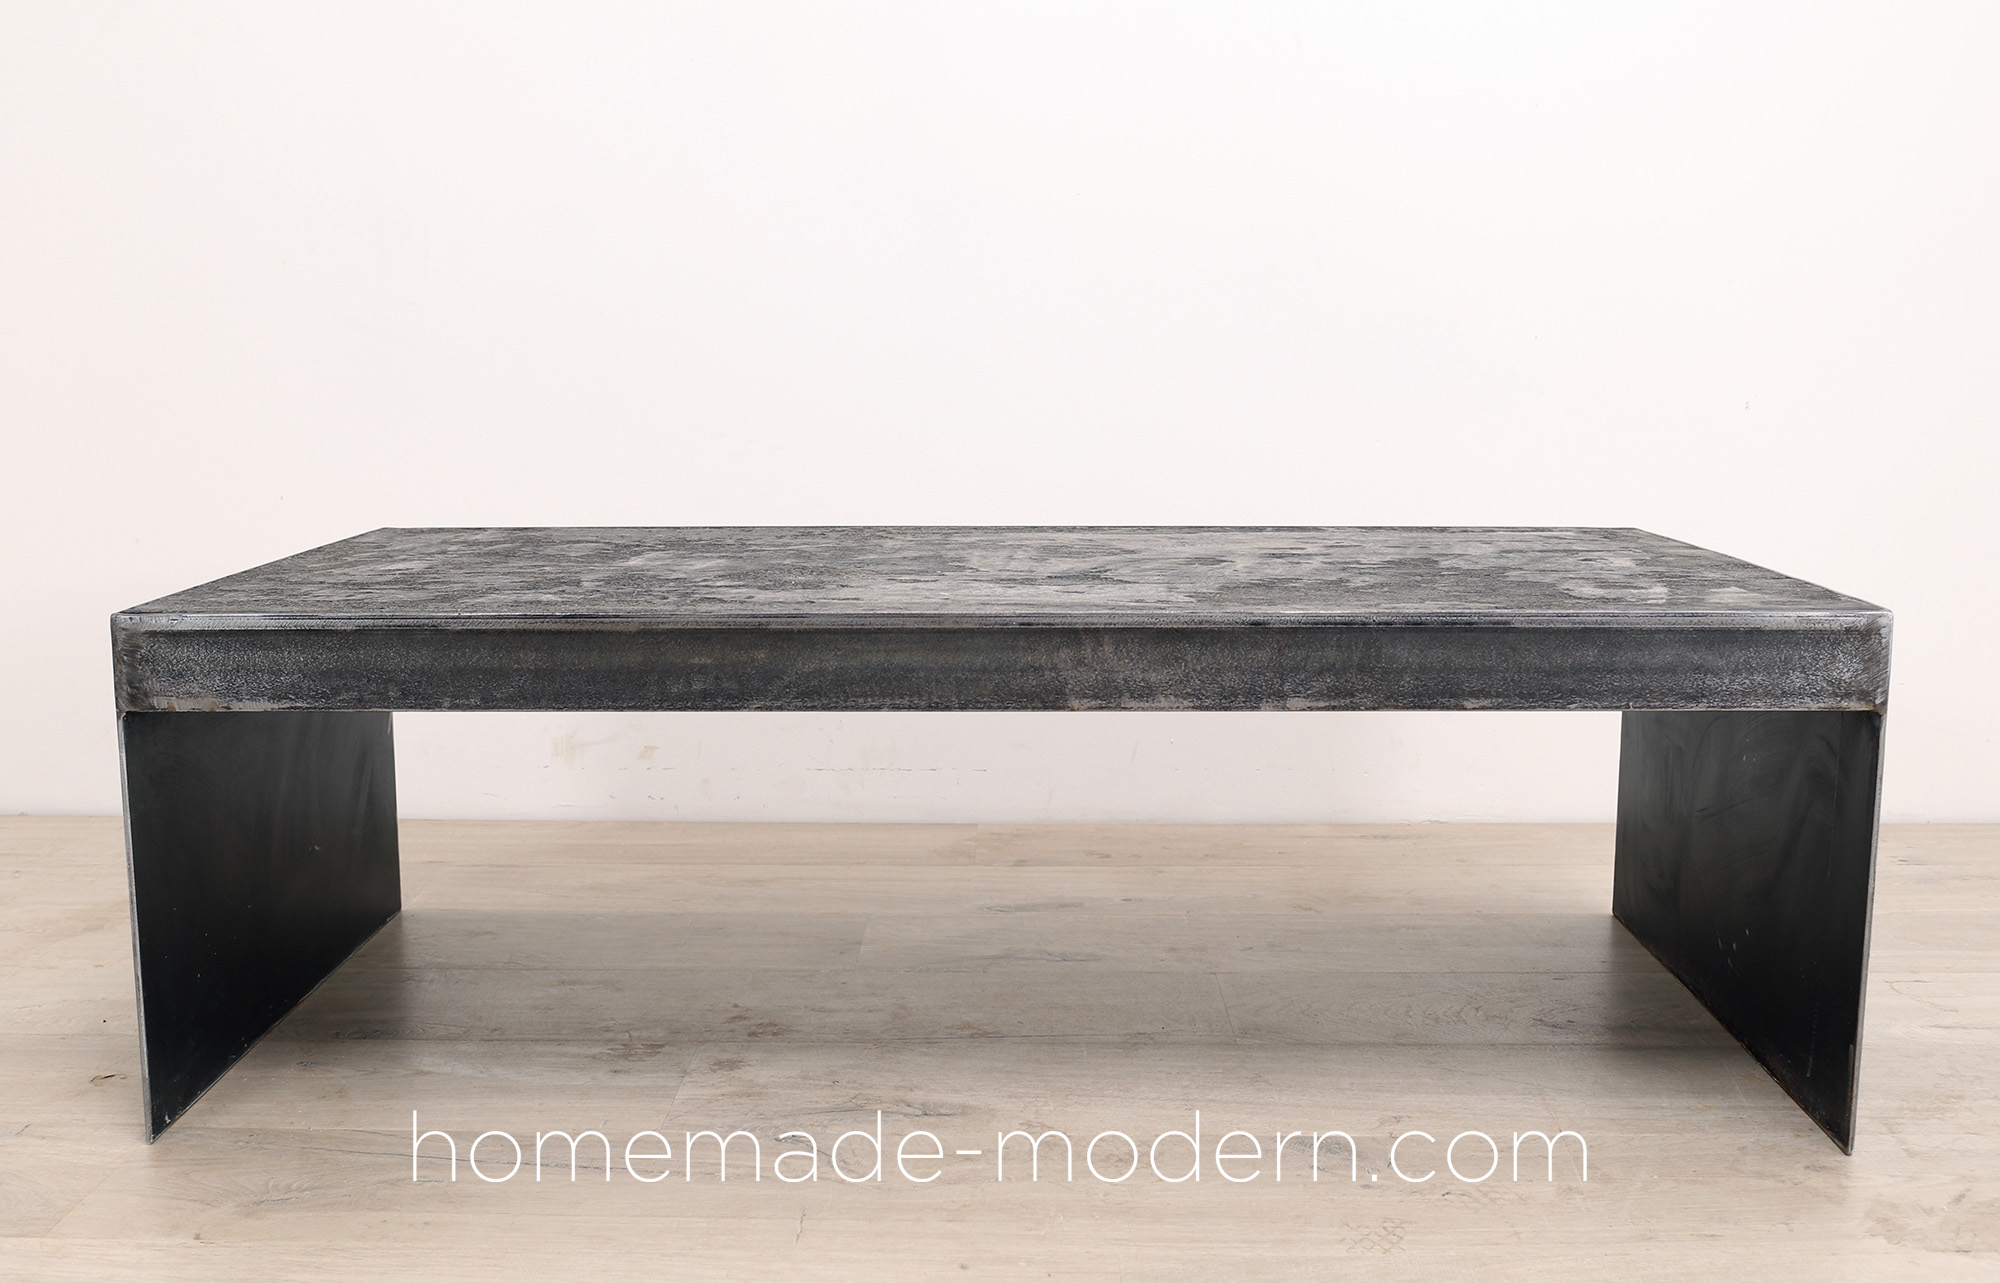 http://www.homemade-modern.com/wp-content/uploads/2019/03/blackconcretetable-final001.jpg